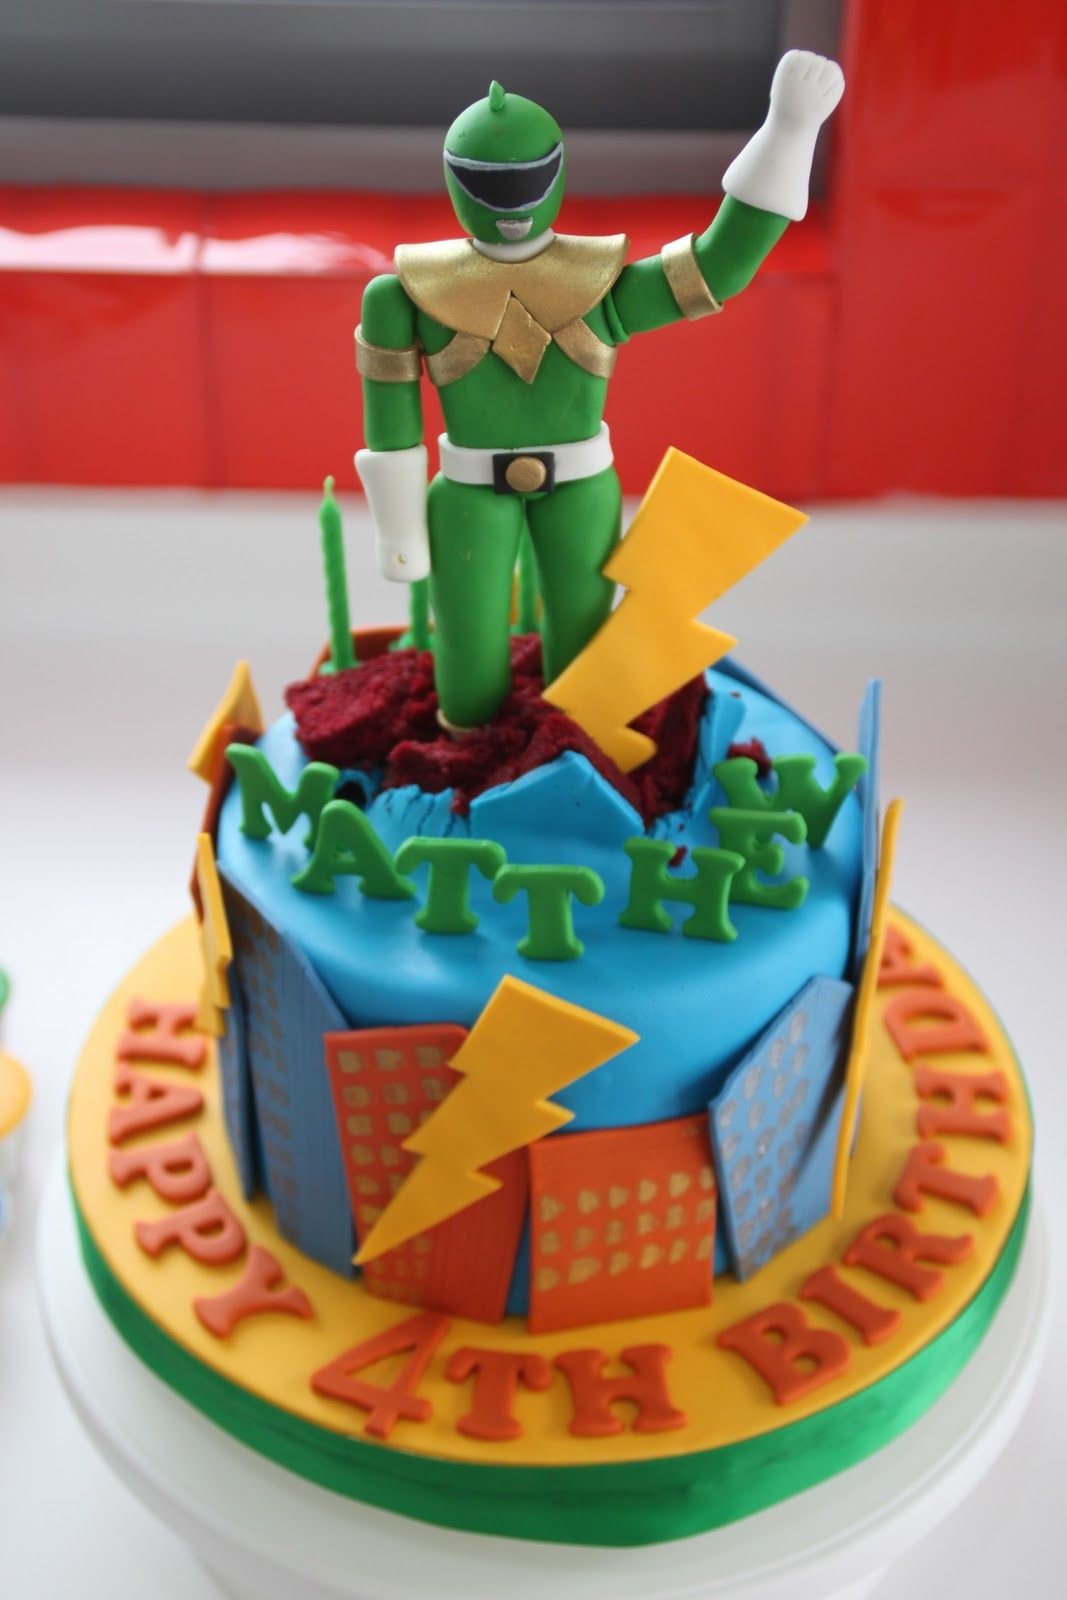 Celebrate with cake power ranger cake and cupcakes